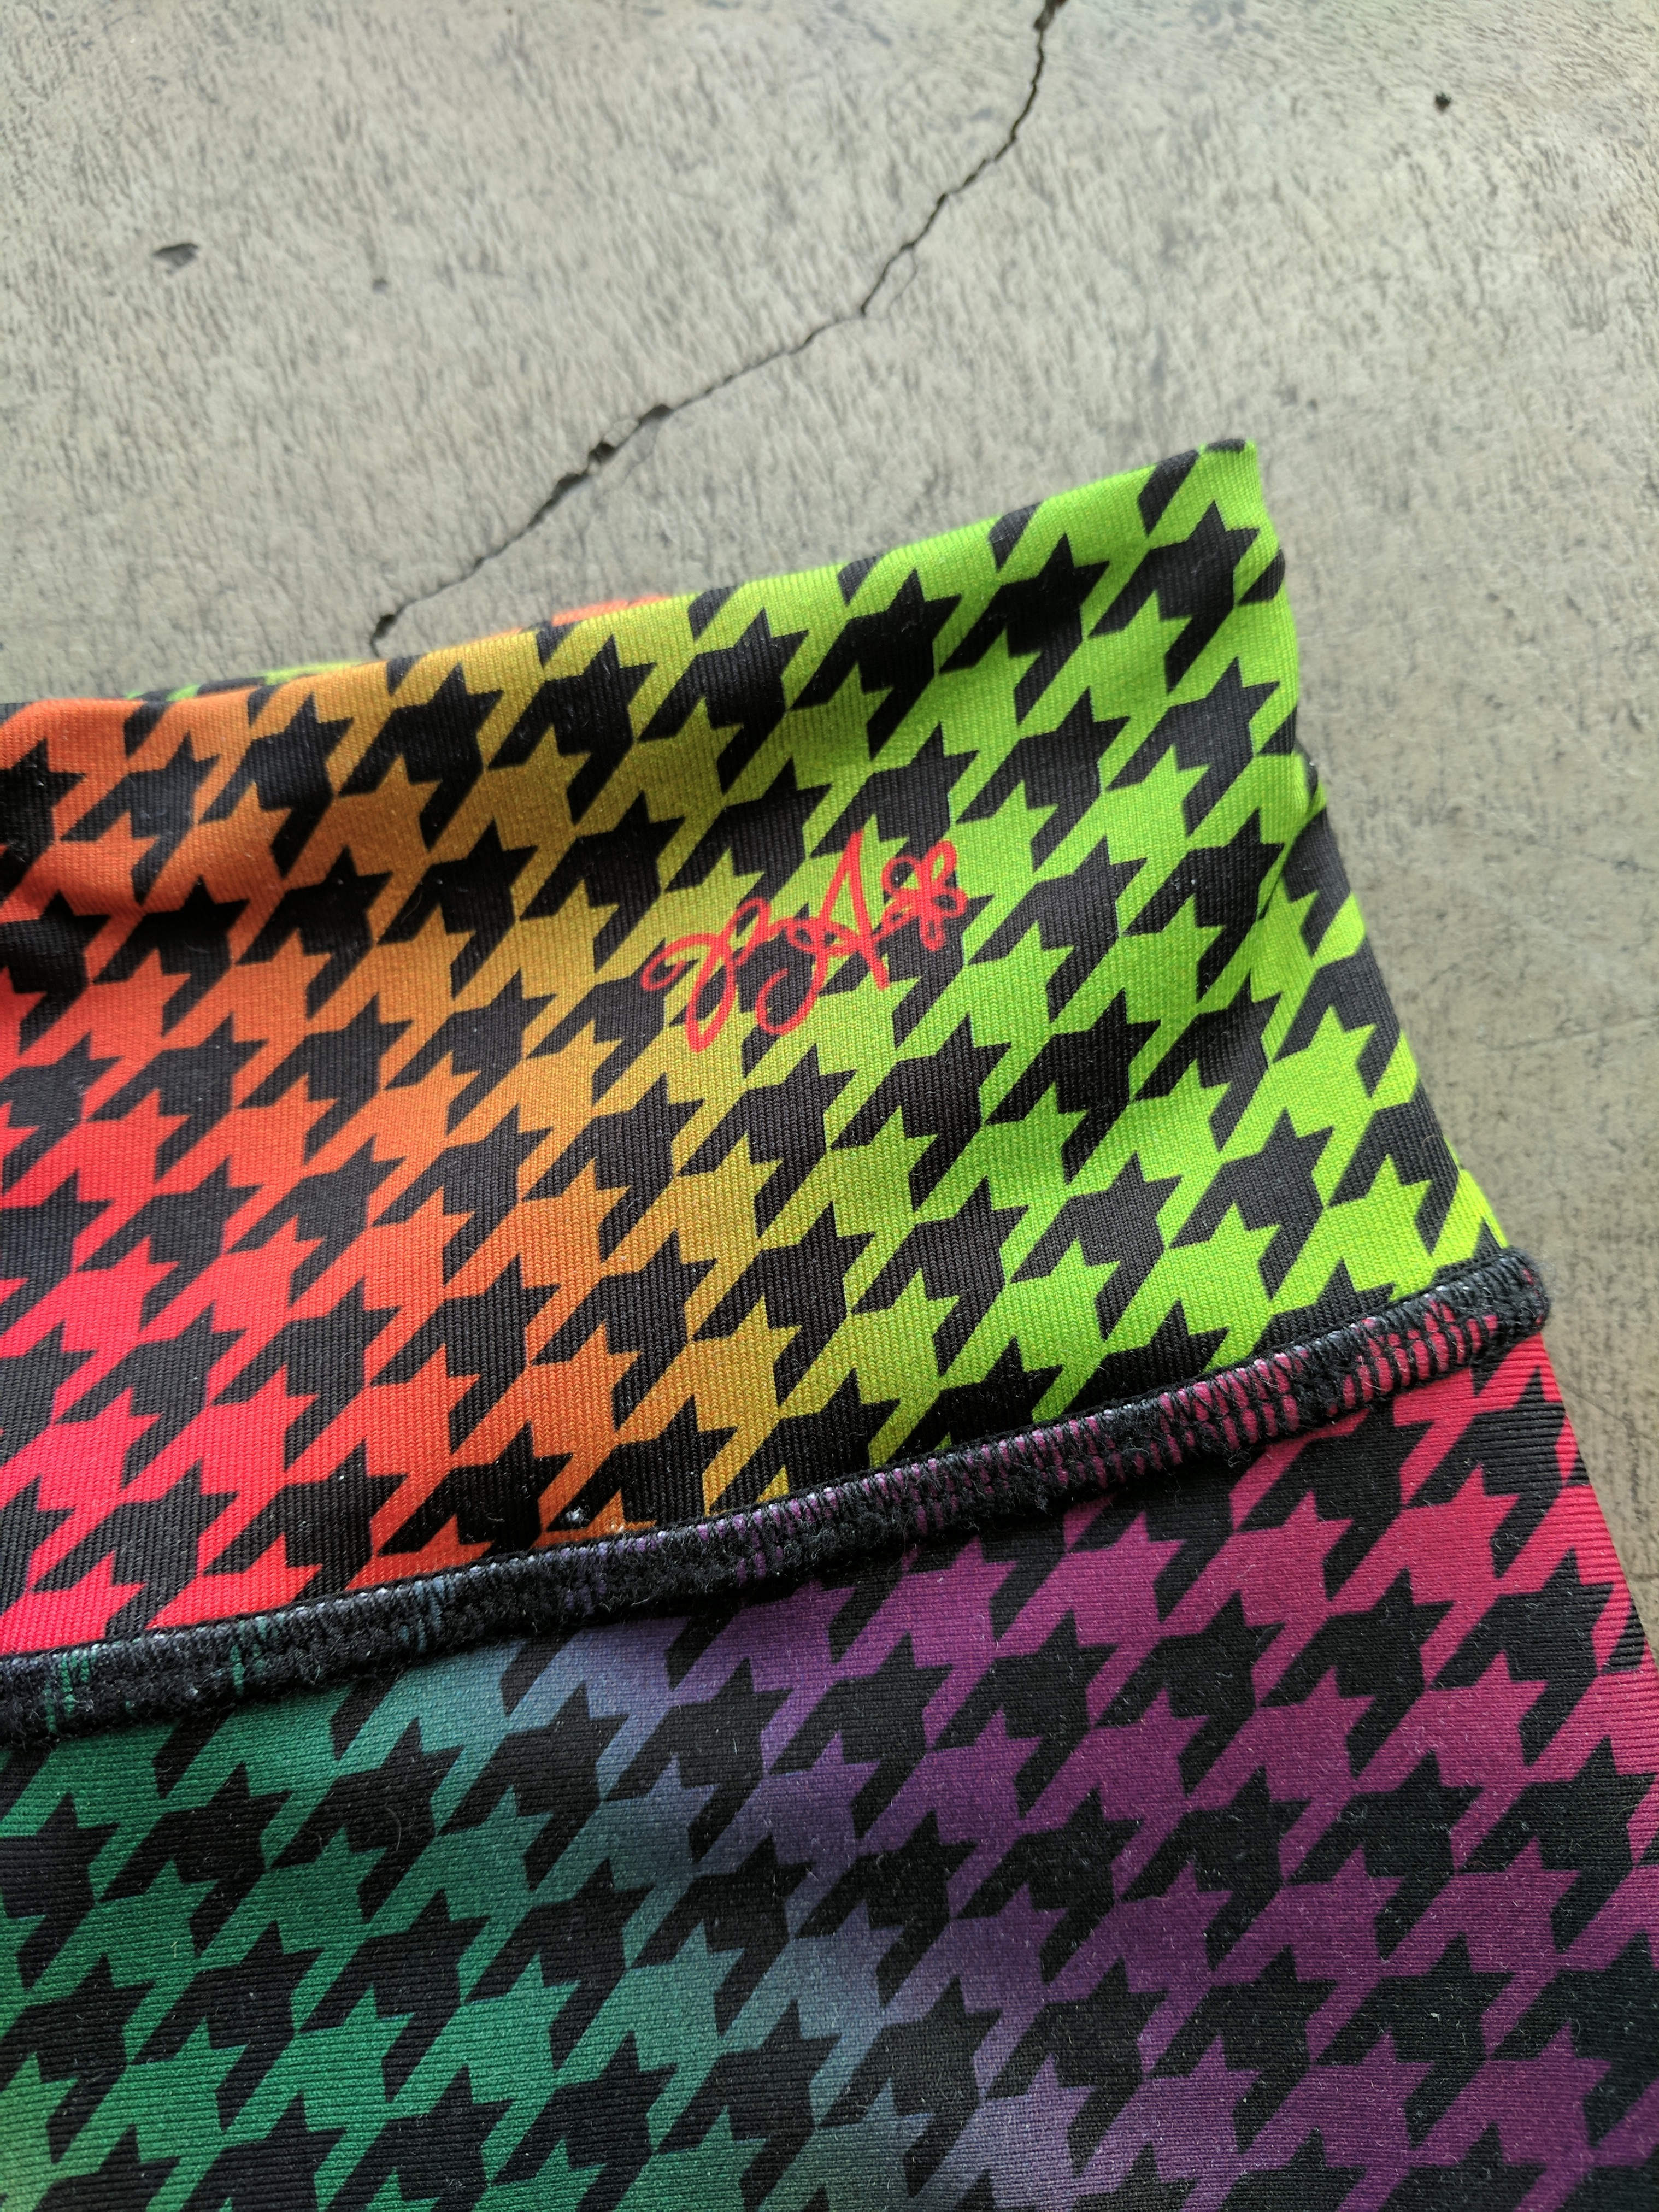 body angel activewear rainbow houndstooth waistband logo